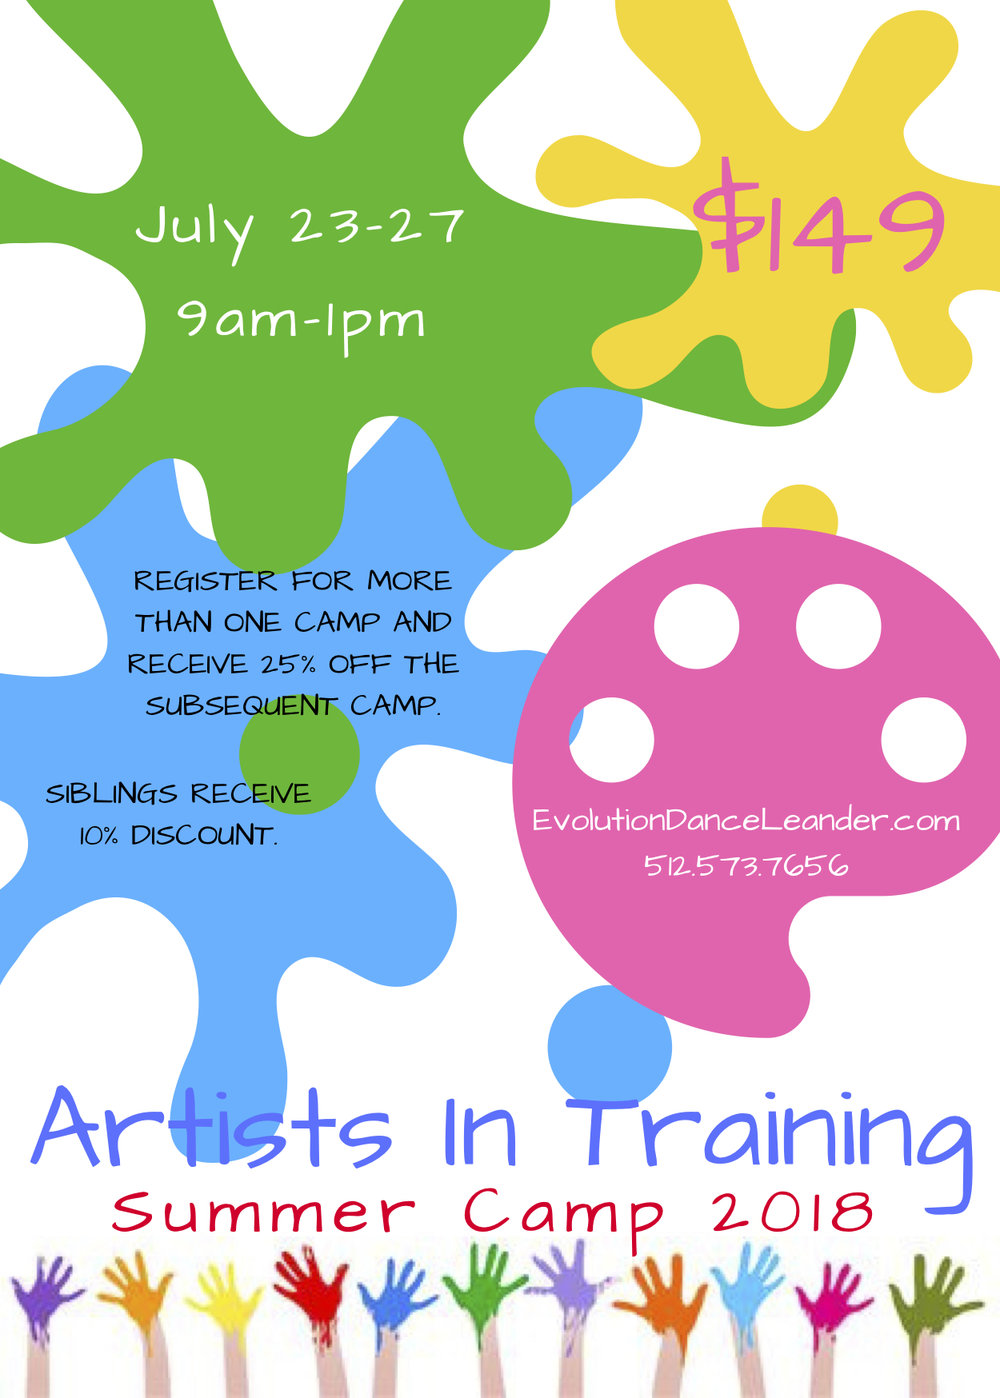 Artists In Training Camp - Explore your inner artist with this camp where we will create masterpieces of all kinds through paint, crafts, music, dance, acting, photography, and more! There is more than one way to be an artist, what do you have inside you to share with the world? Ages 3-6